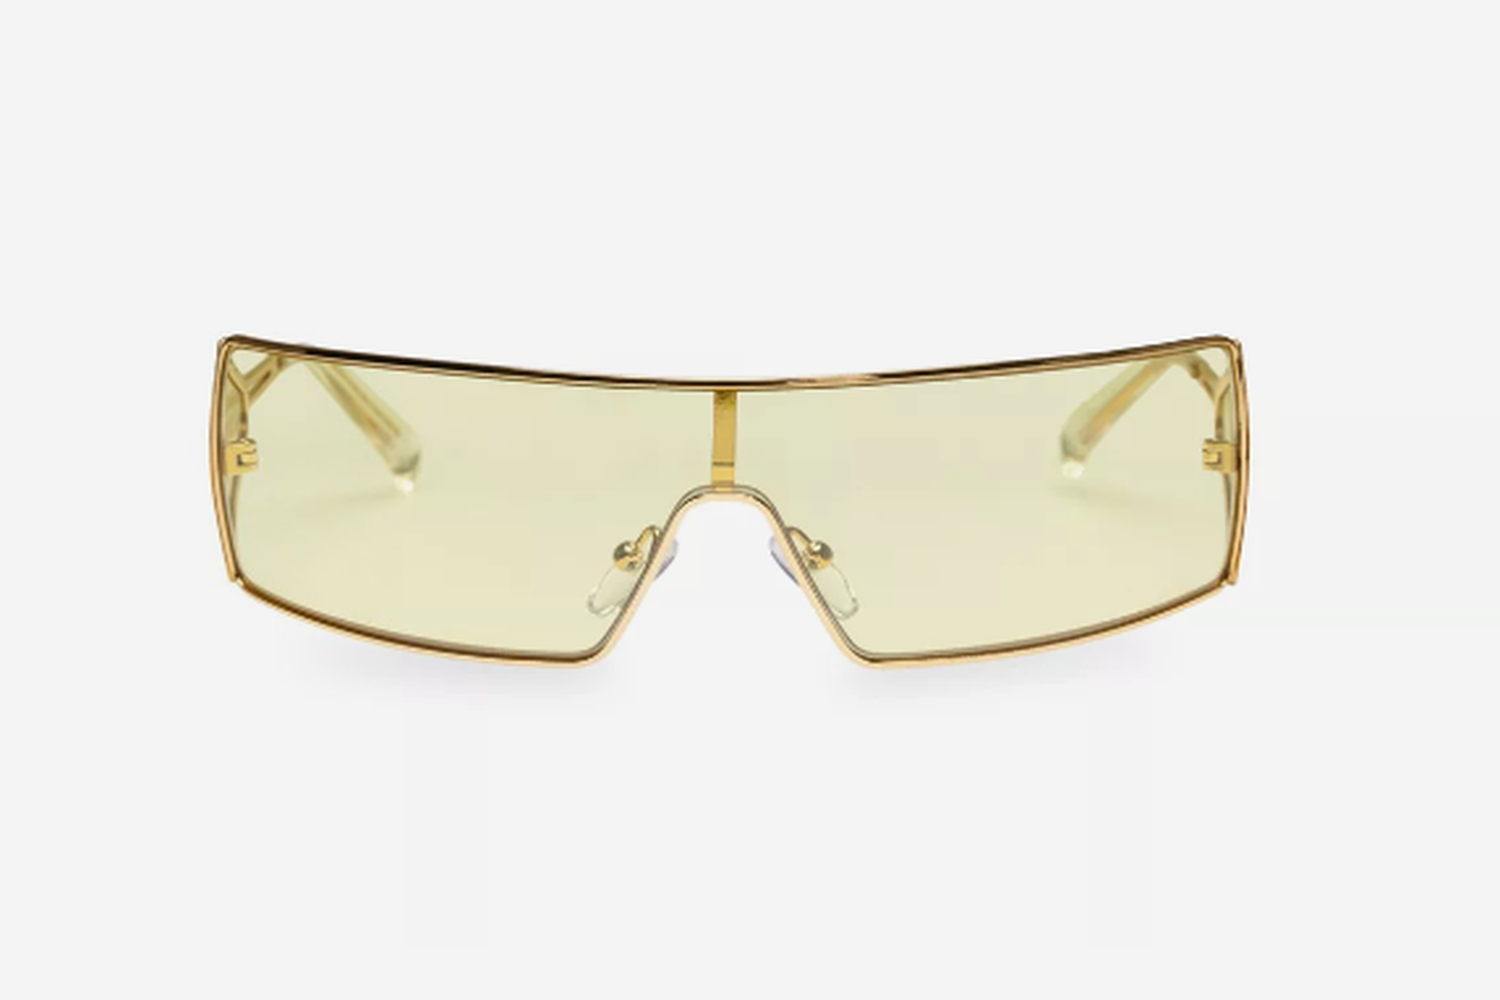 The Luxx Sheild Sunglasses